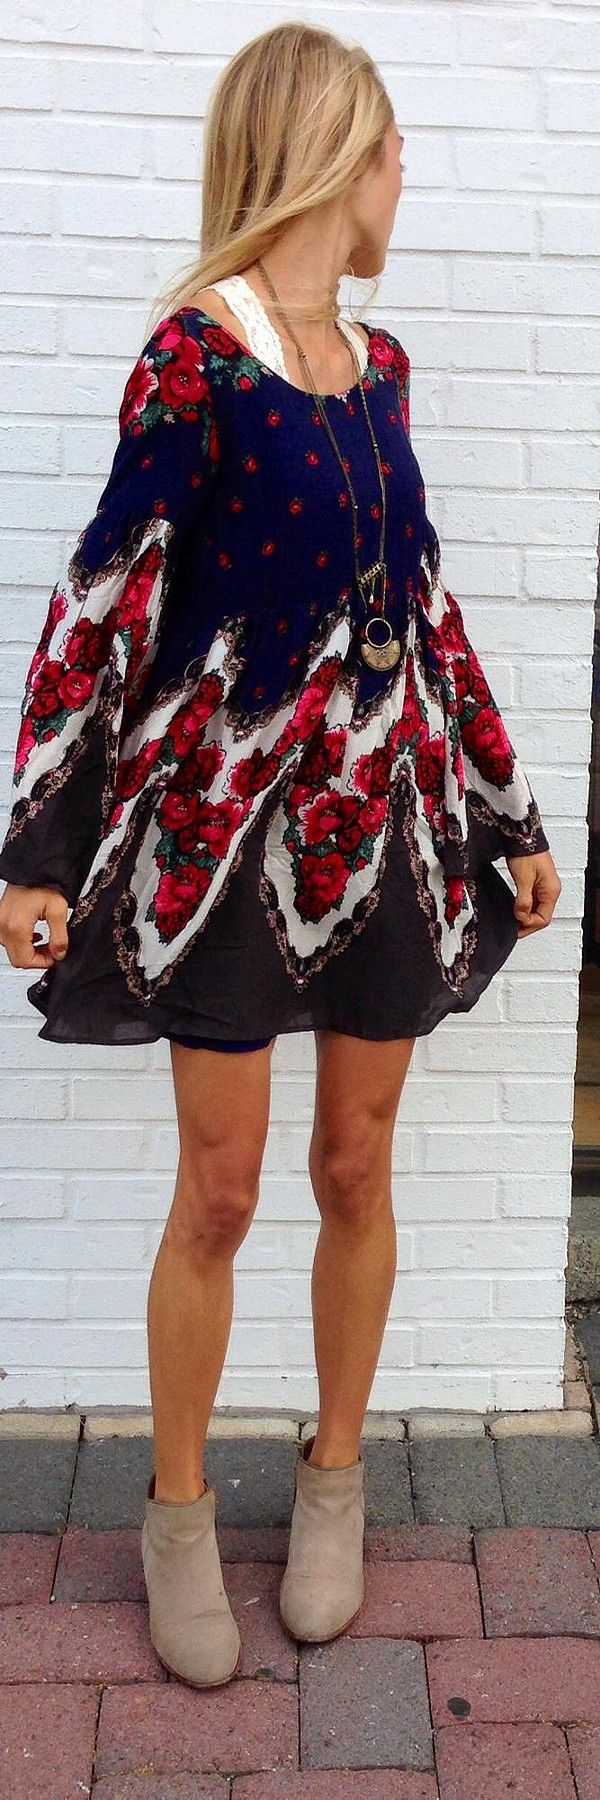 Spring dress + ankle boot.